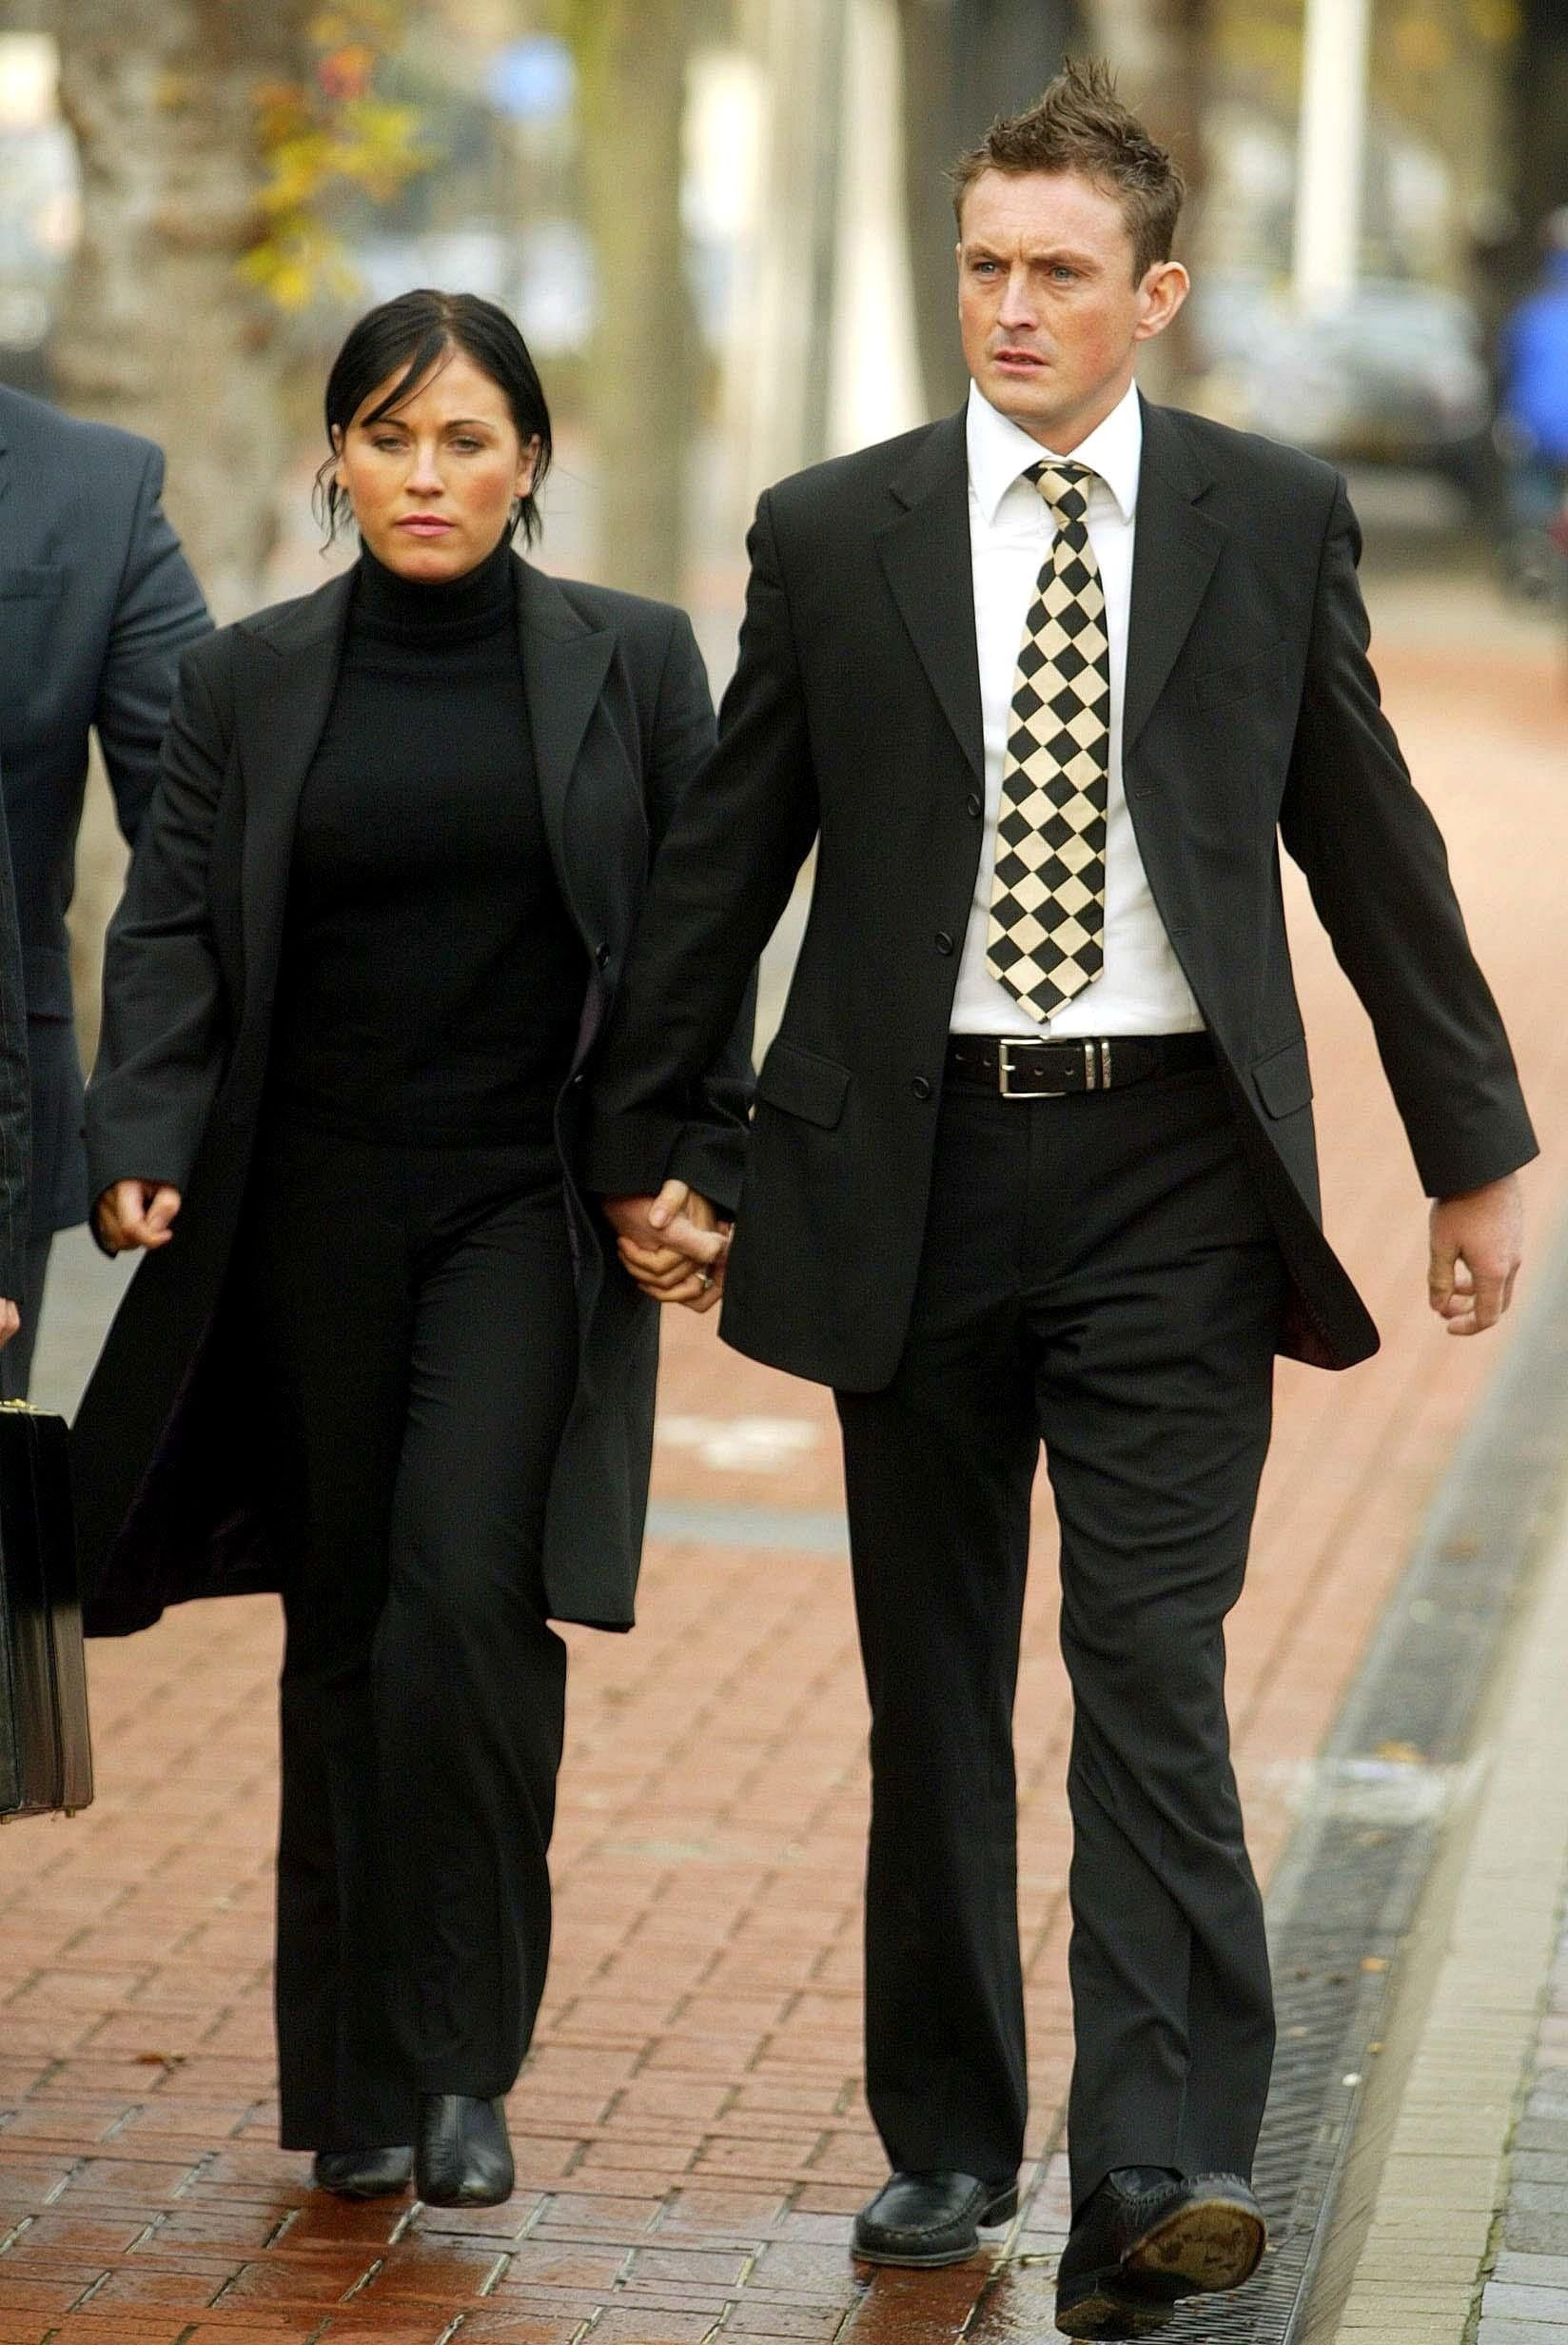 Jessie arrives at court accused of drink-driving in 2003, accompanied by then-boyfriend and former police officer David Morgan